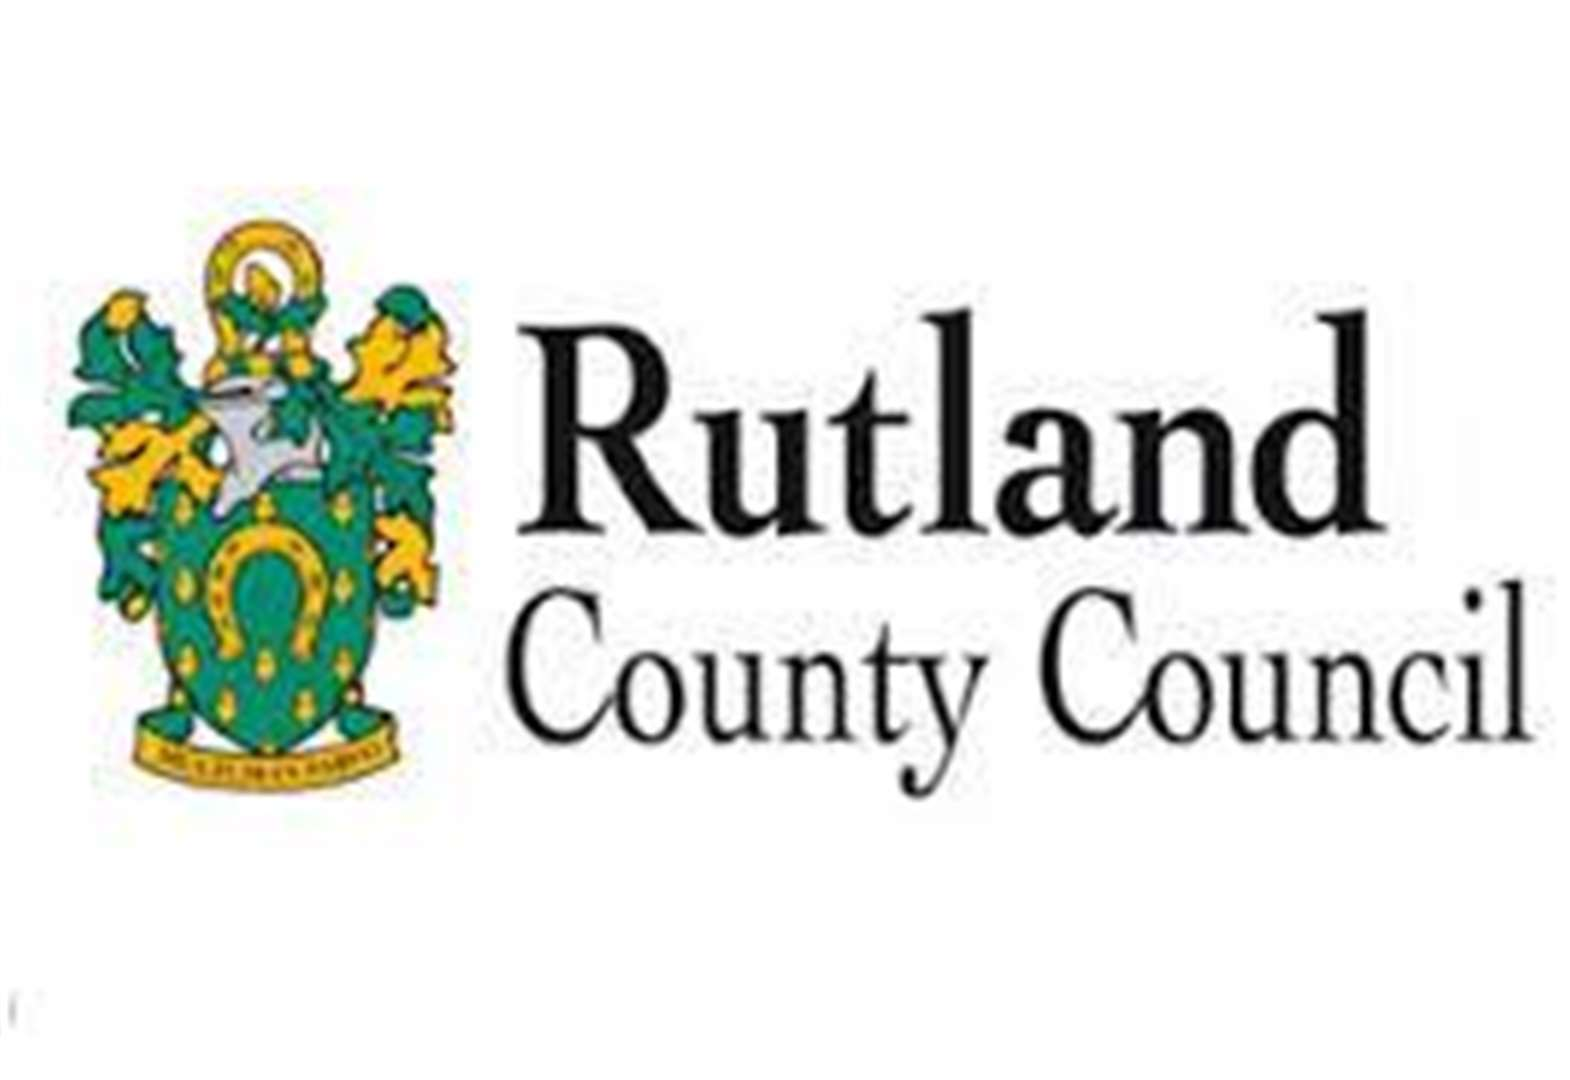 Another Rutland councillor position becomes vacant